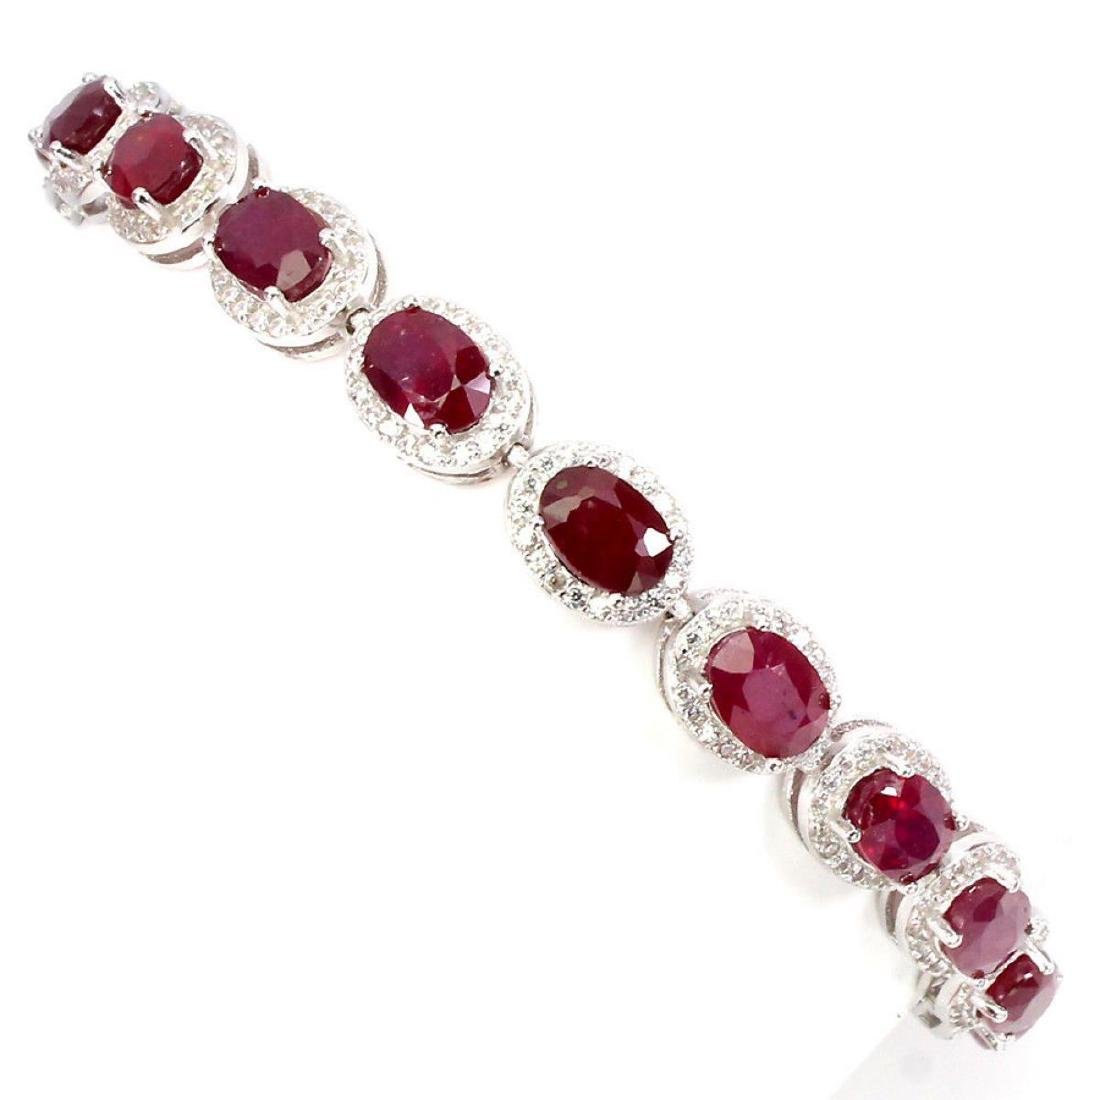 Natural Oval 7x5 Mm Blood Red Ruby Bracelet